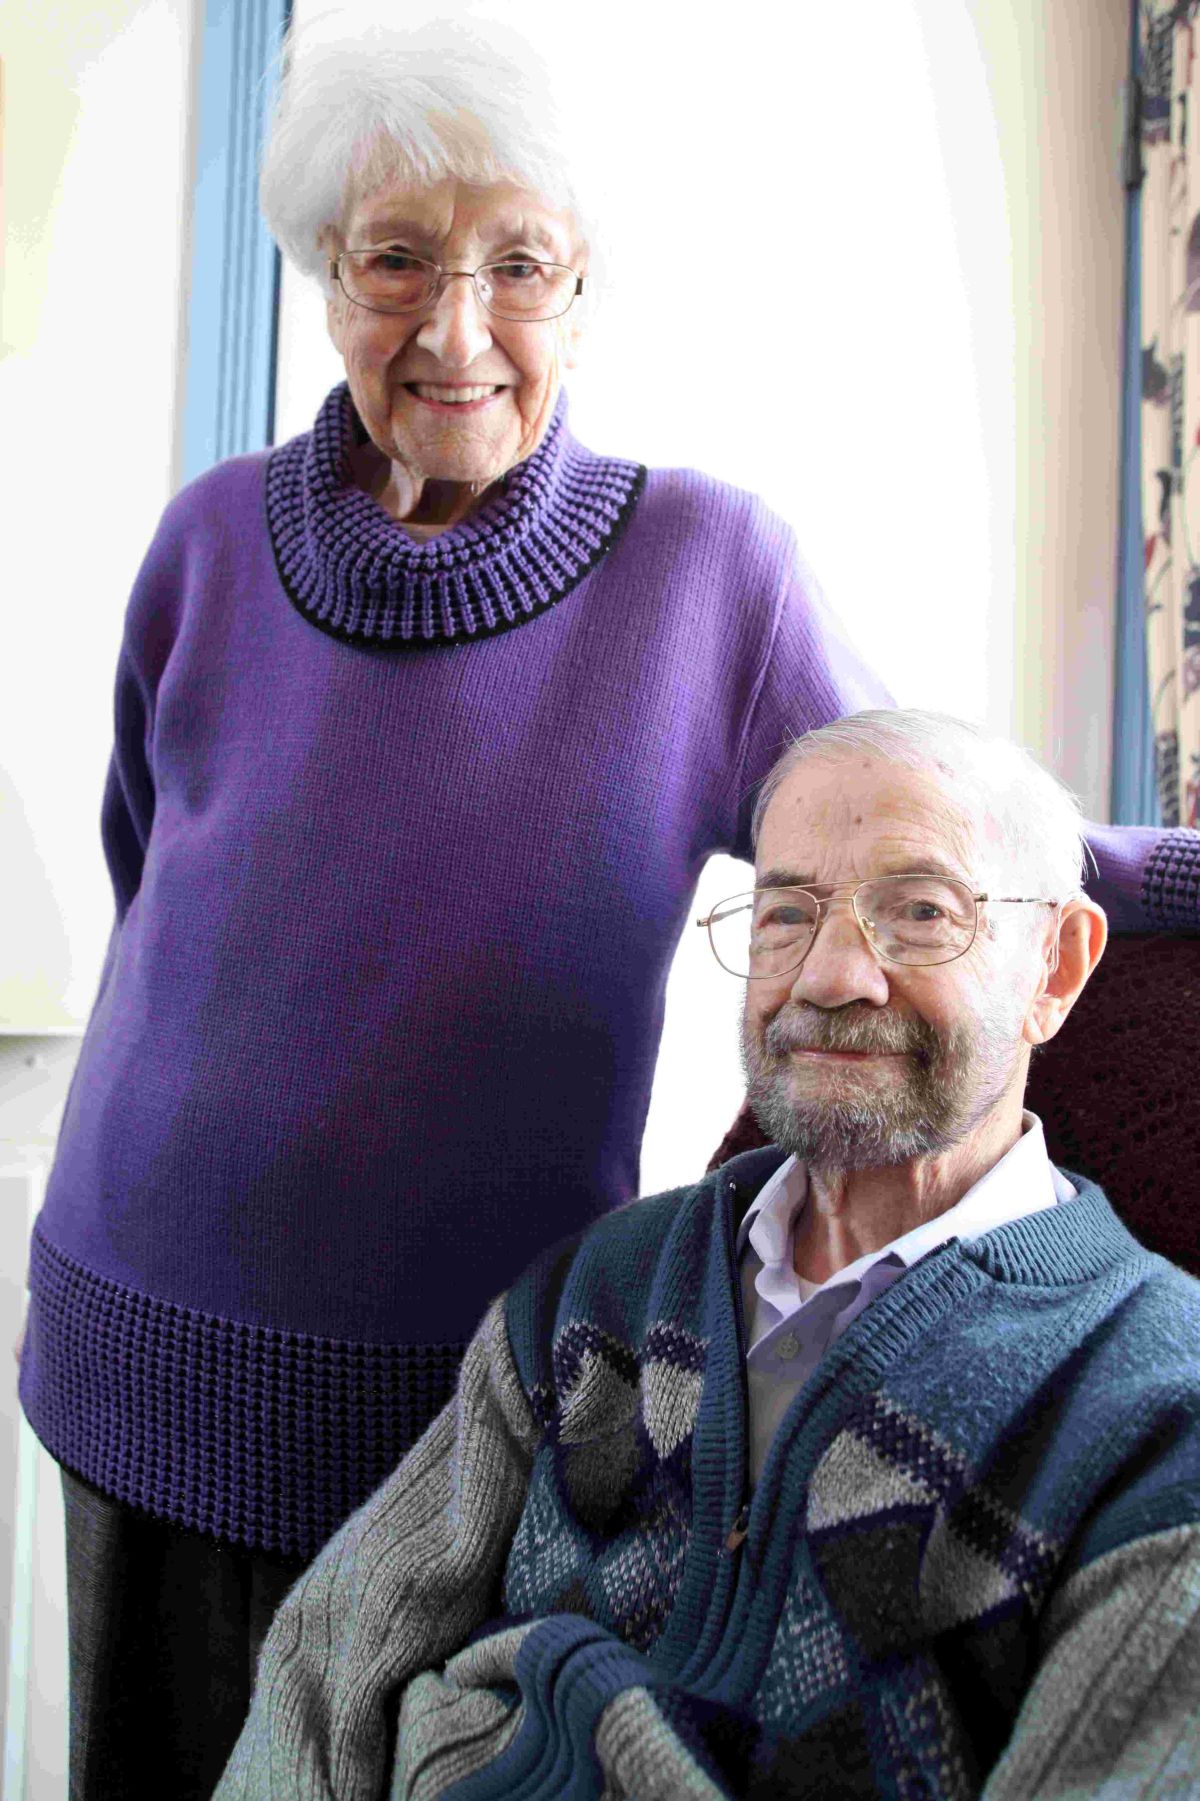 Doug and Betty Hale arrived in Winchester 35 years ago, living in Arthur Road, before moving to accommodation at St John's Winchester Charity in 1998